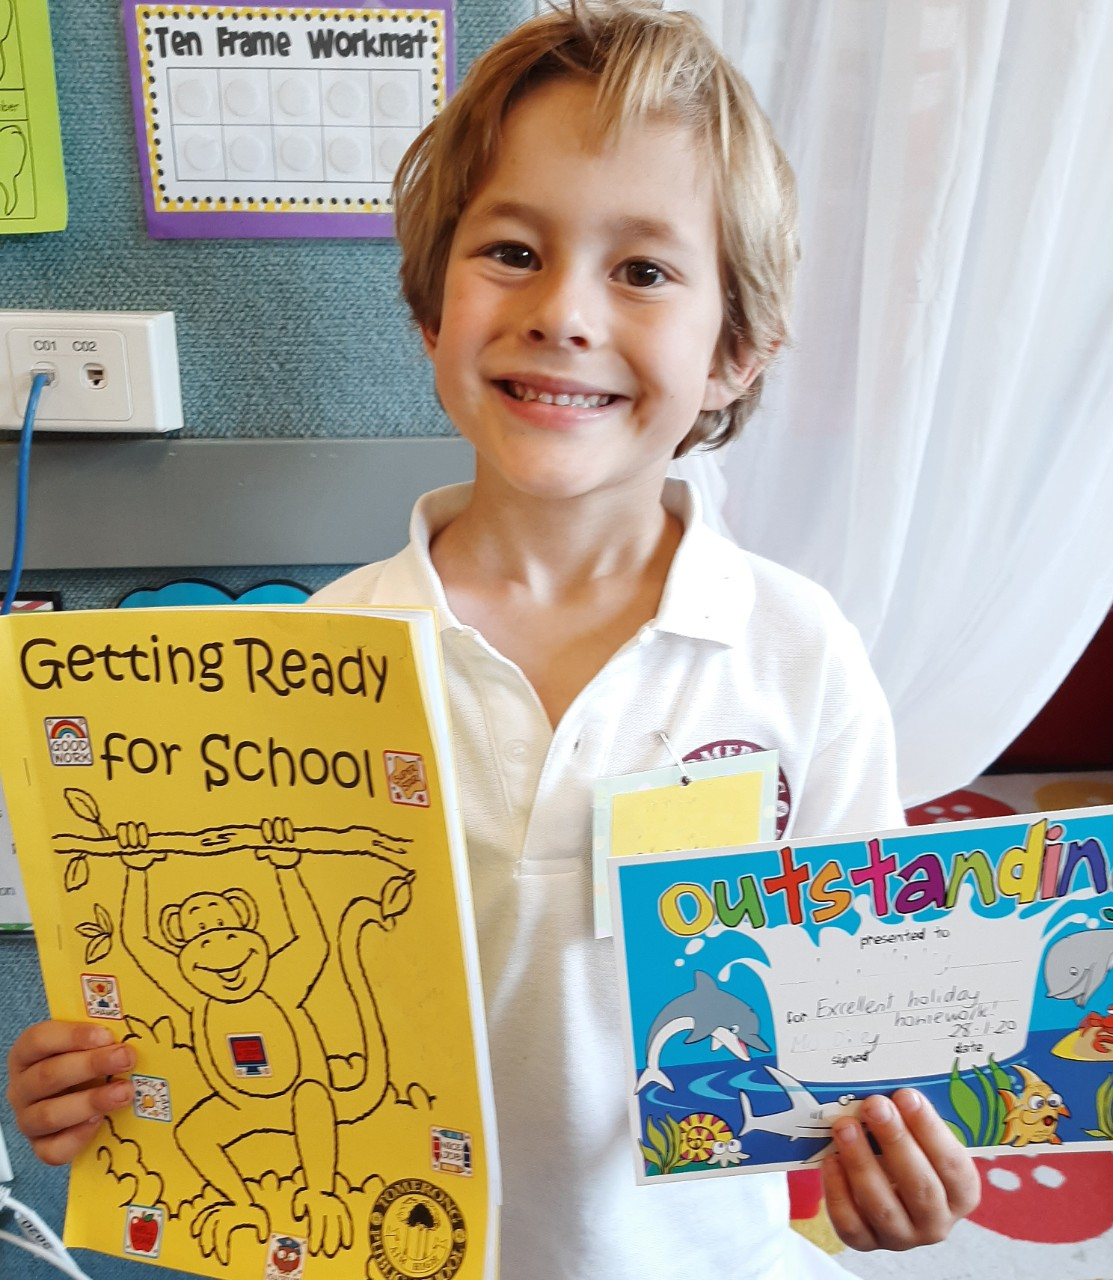 Child with getting ready for school booklet and certificate